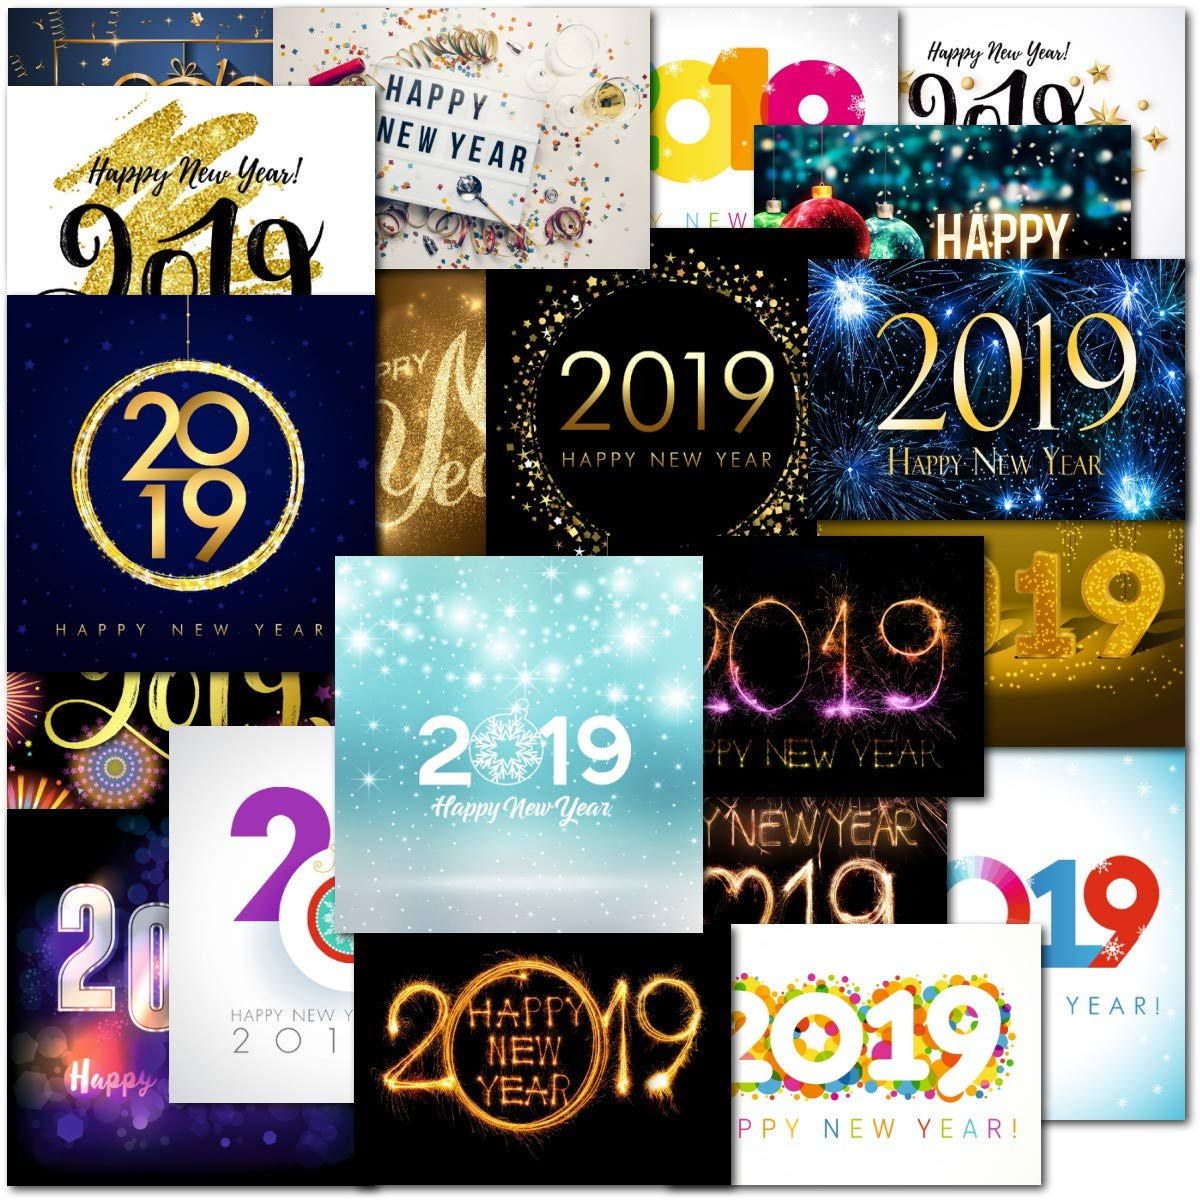 Pack Of 20 Mixed Box New Year 2019 Premium Christmas Greeting Cards